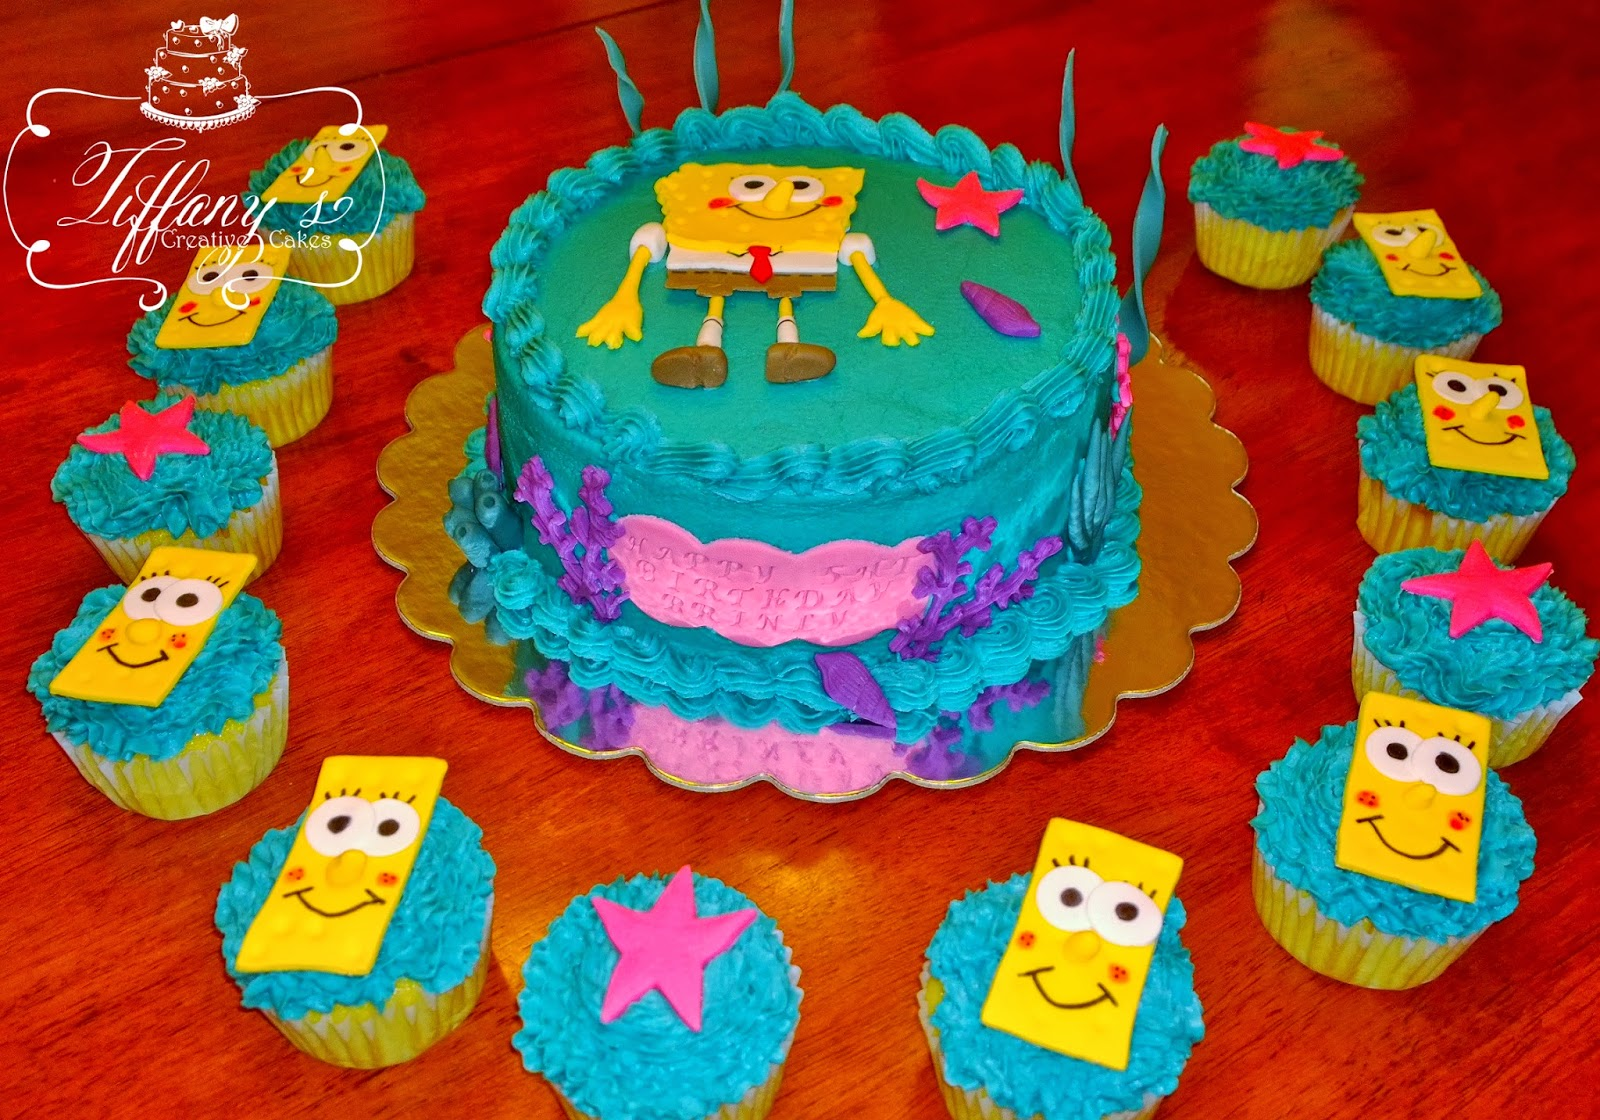 SpongeBob Cake and Cupcakes for Icing Smiles Tiffanys Creative Cakes